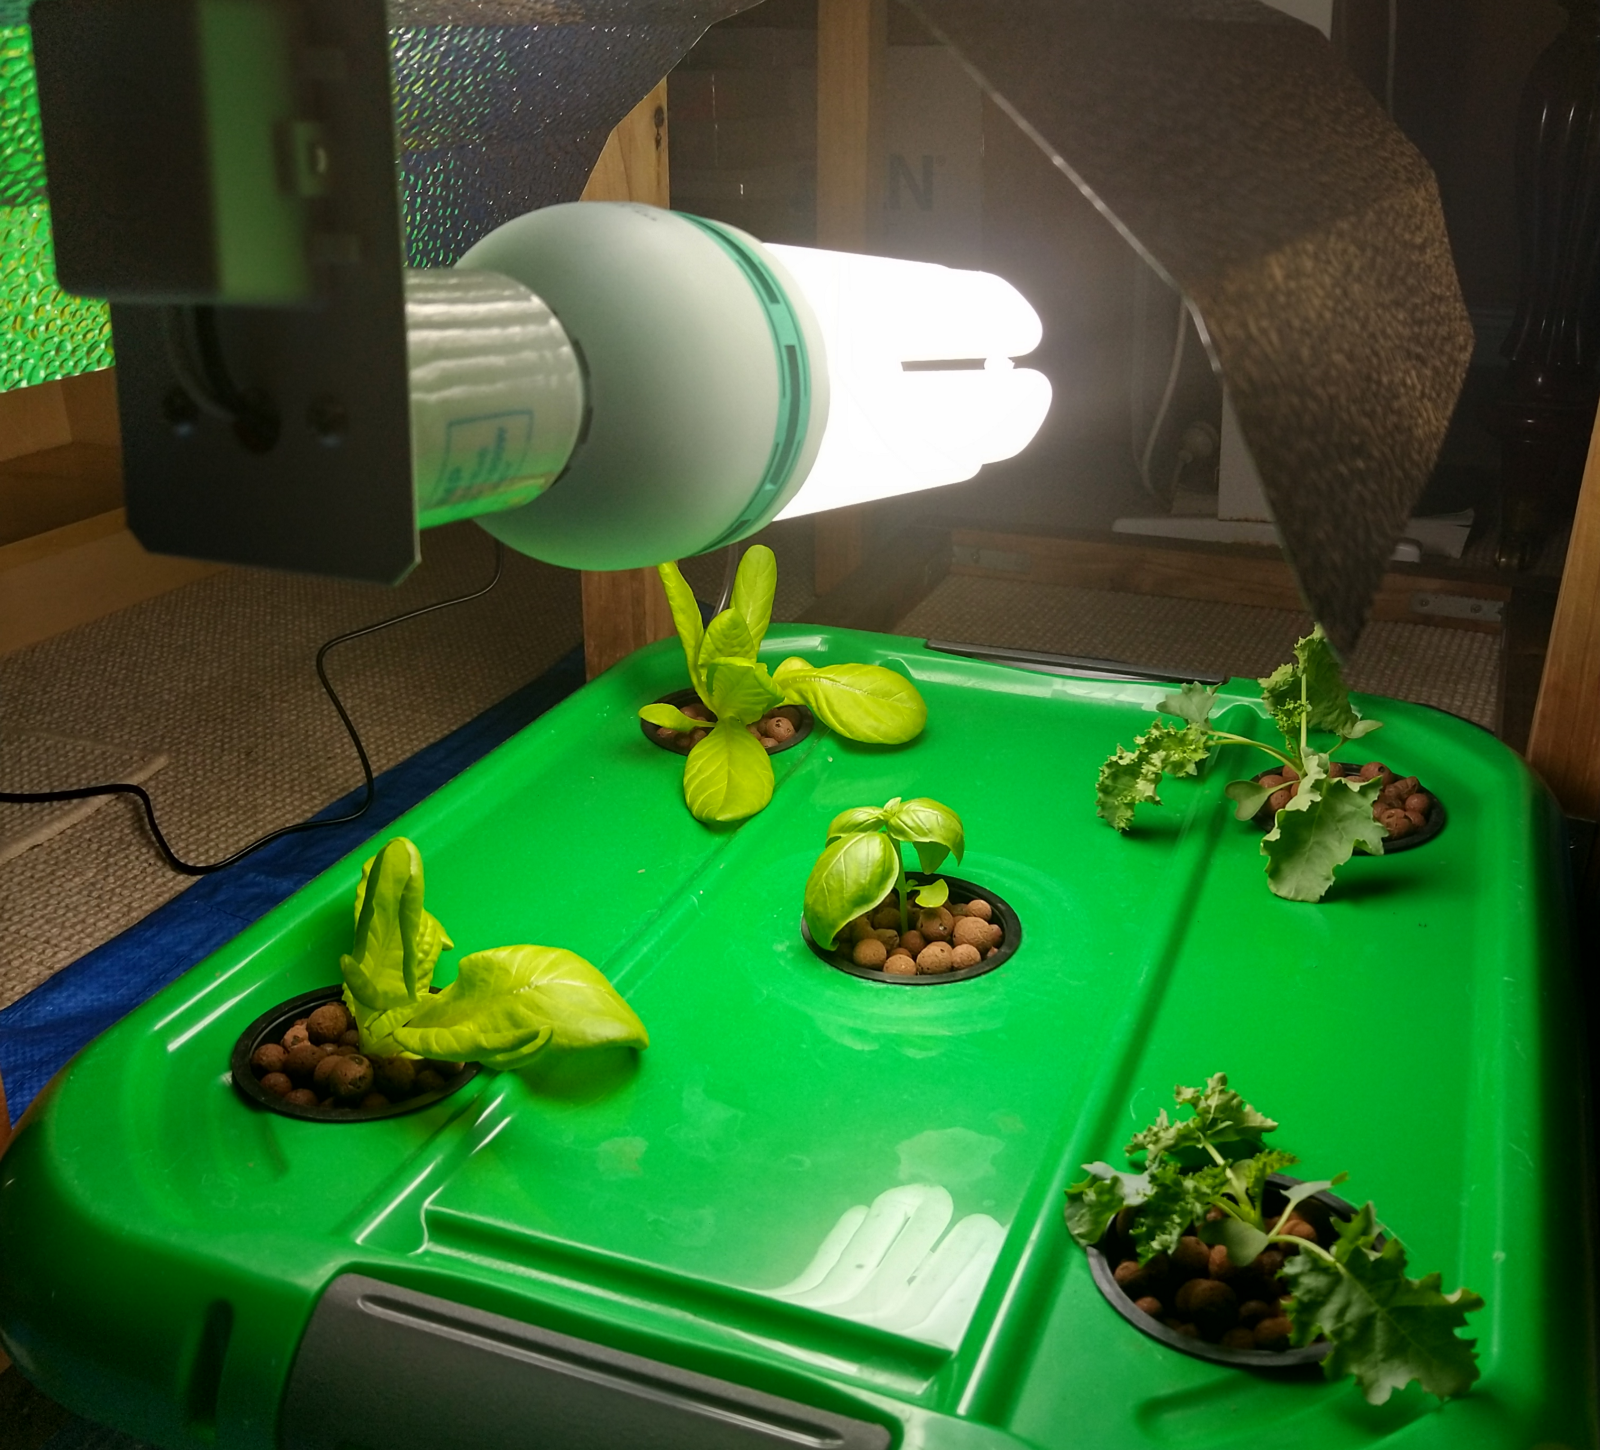 The $300 Lettuce: Building a Smart Garden - By Darcy Sanders